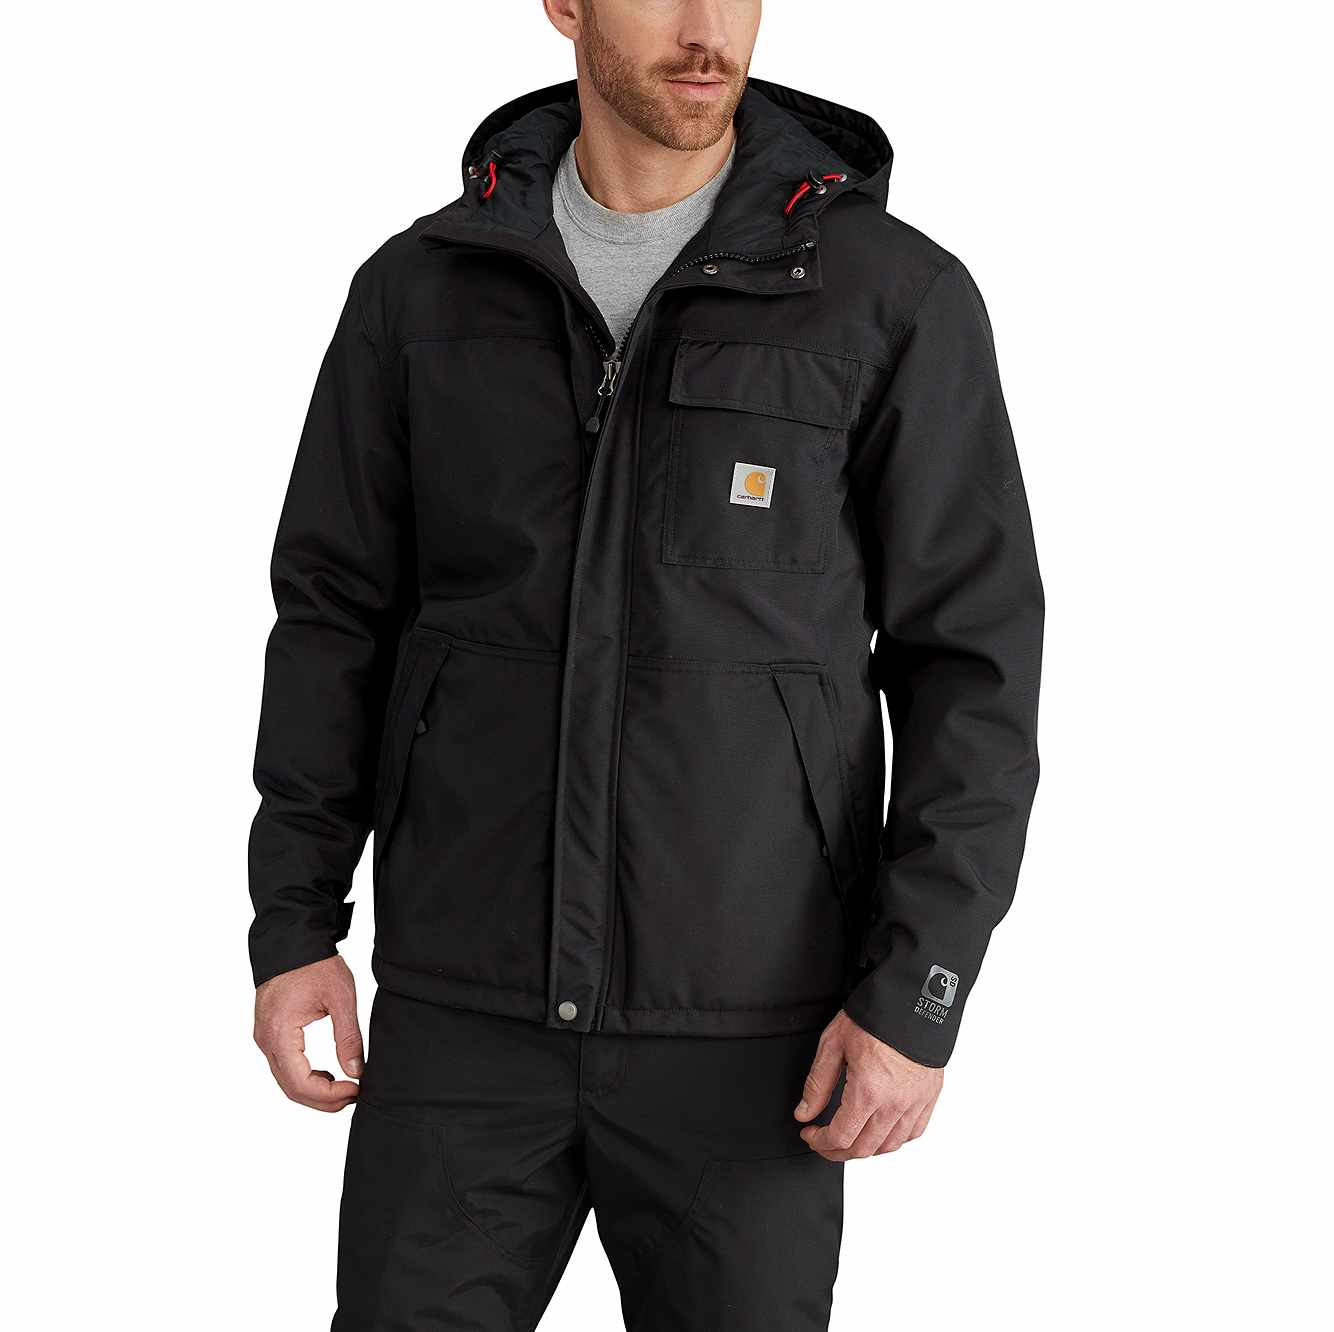 Picture of Insulated Shoreline Jacket in Black